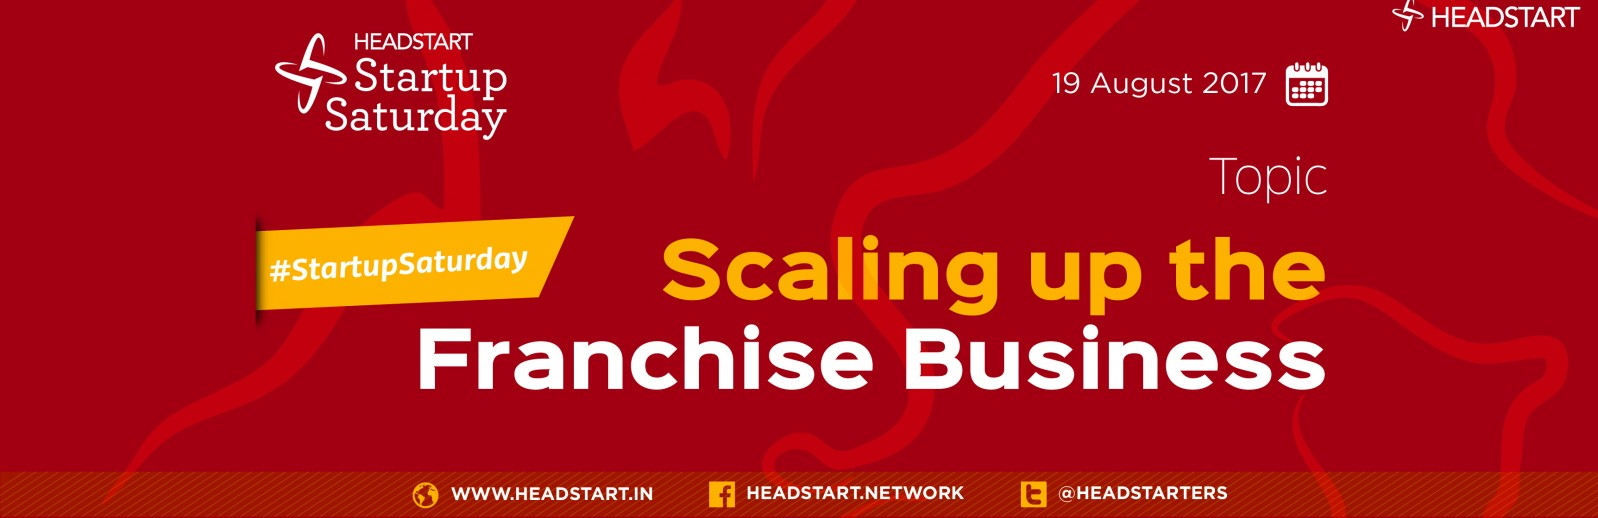 scaling up franchise business